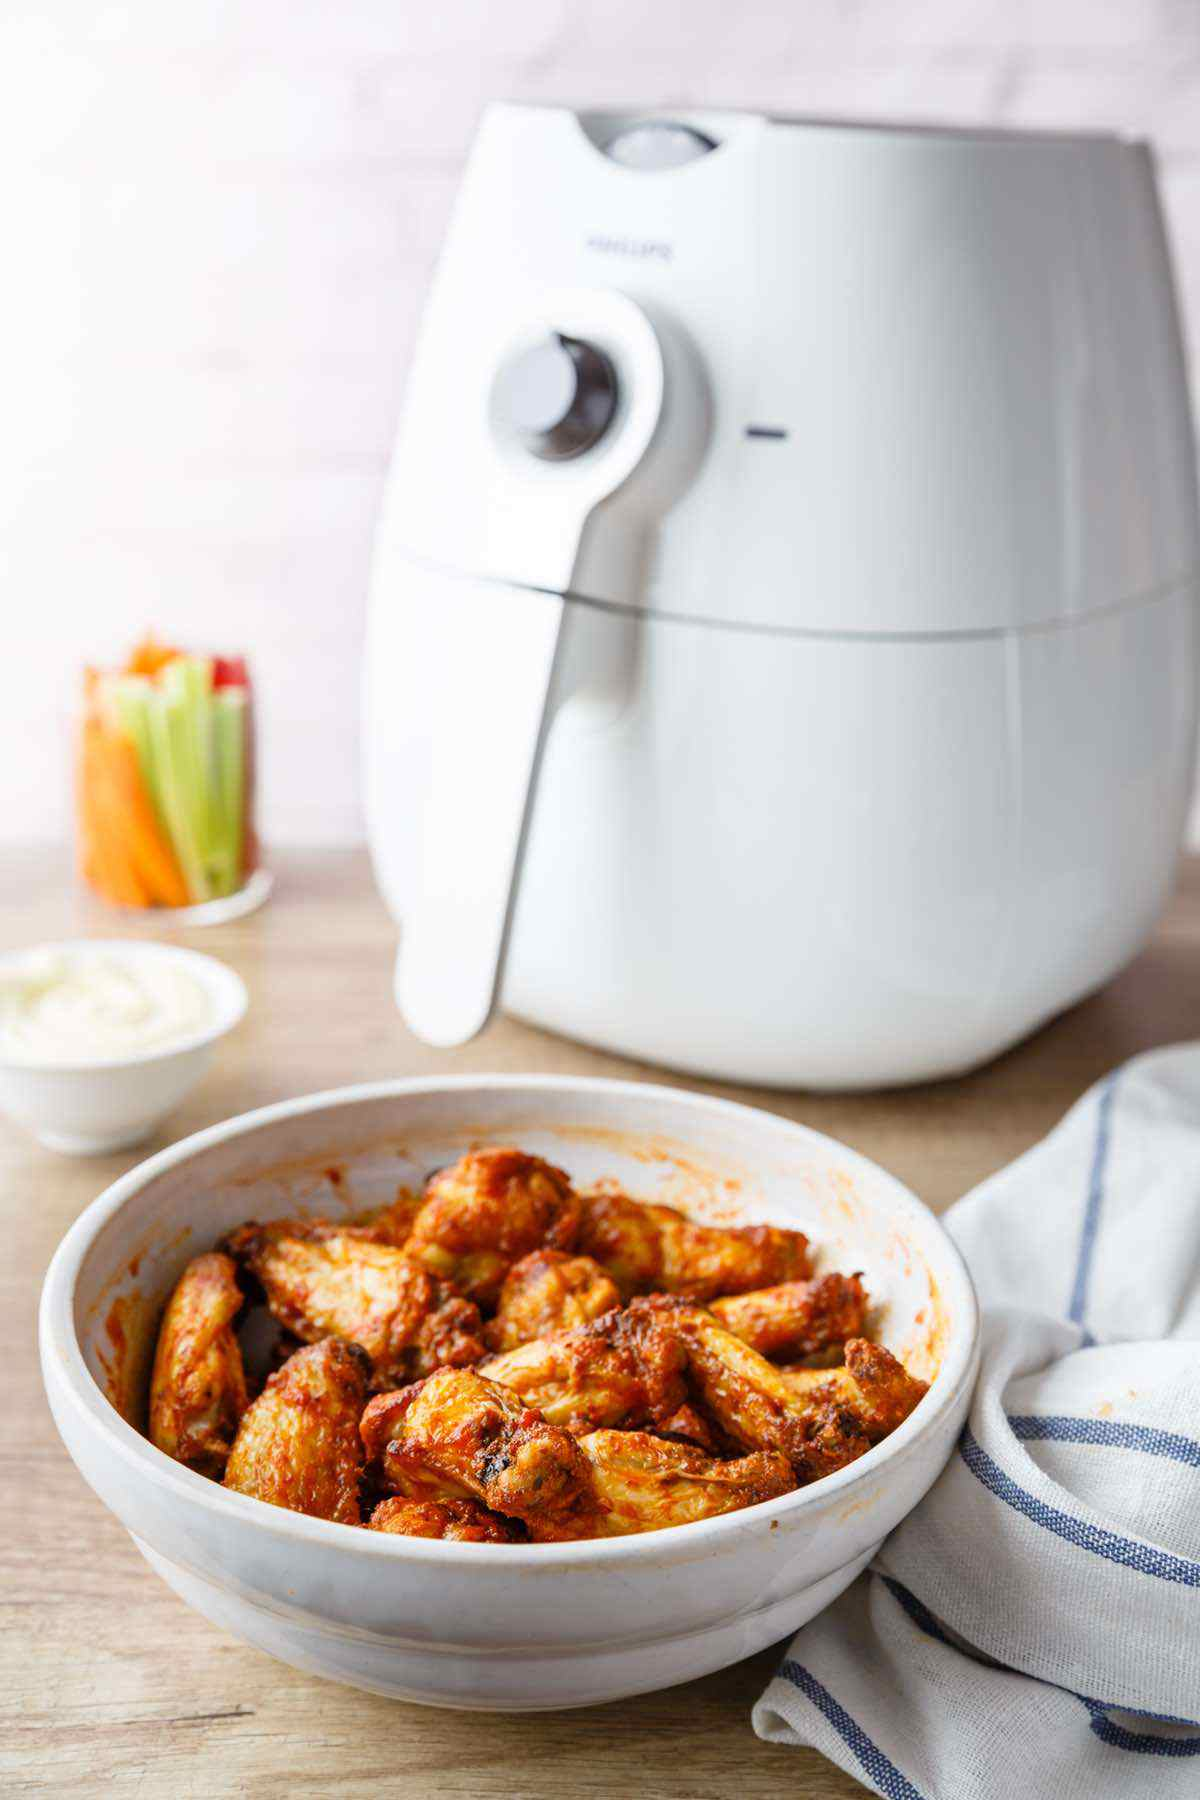 how to cook hot wings in an air fryer